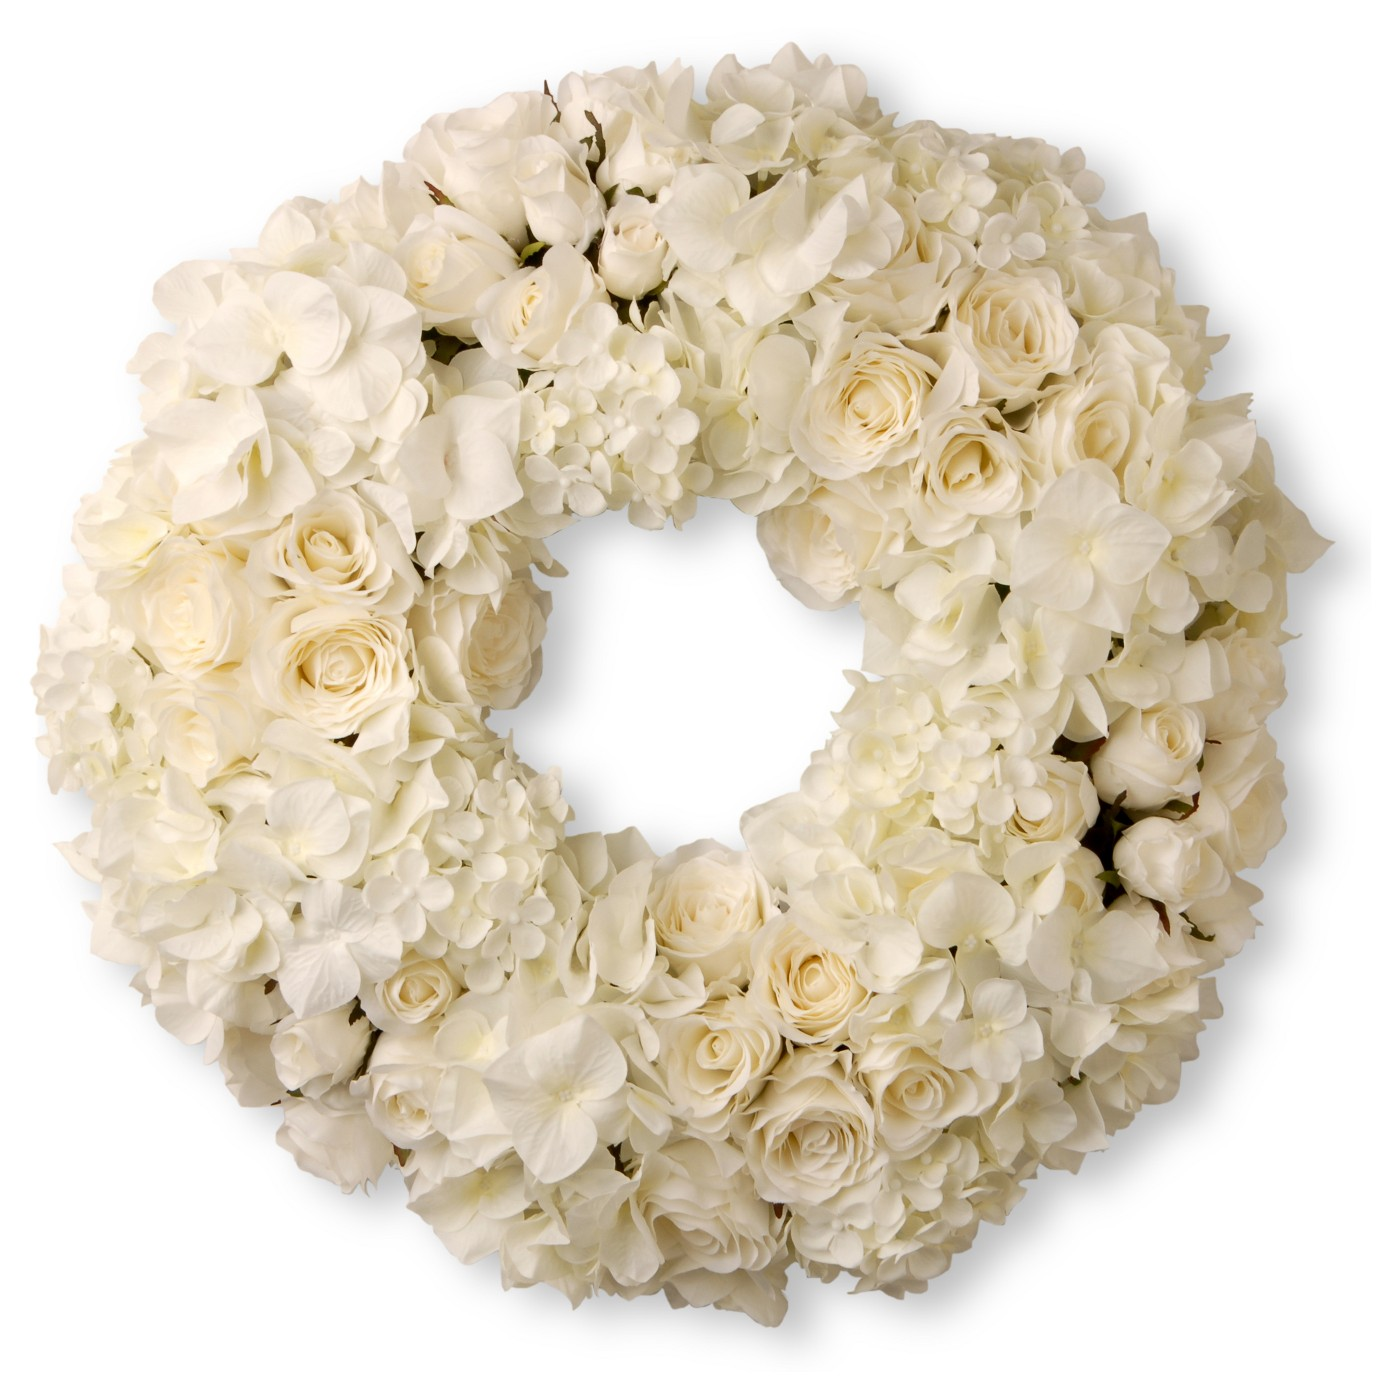 "18"" White Roses & Hydrangeas Wreath - National Tree Company - image 1 of 1"